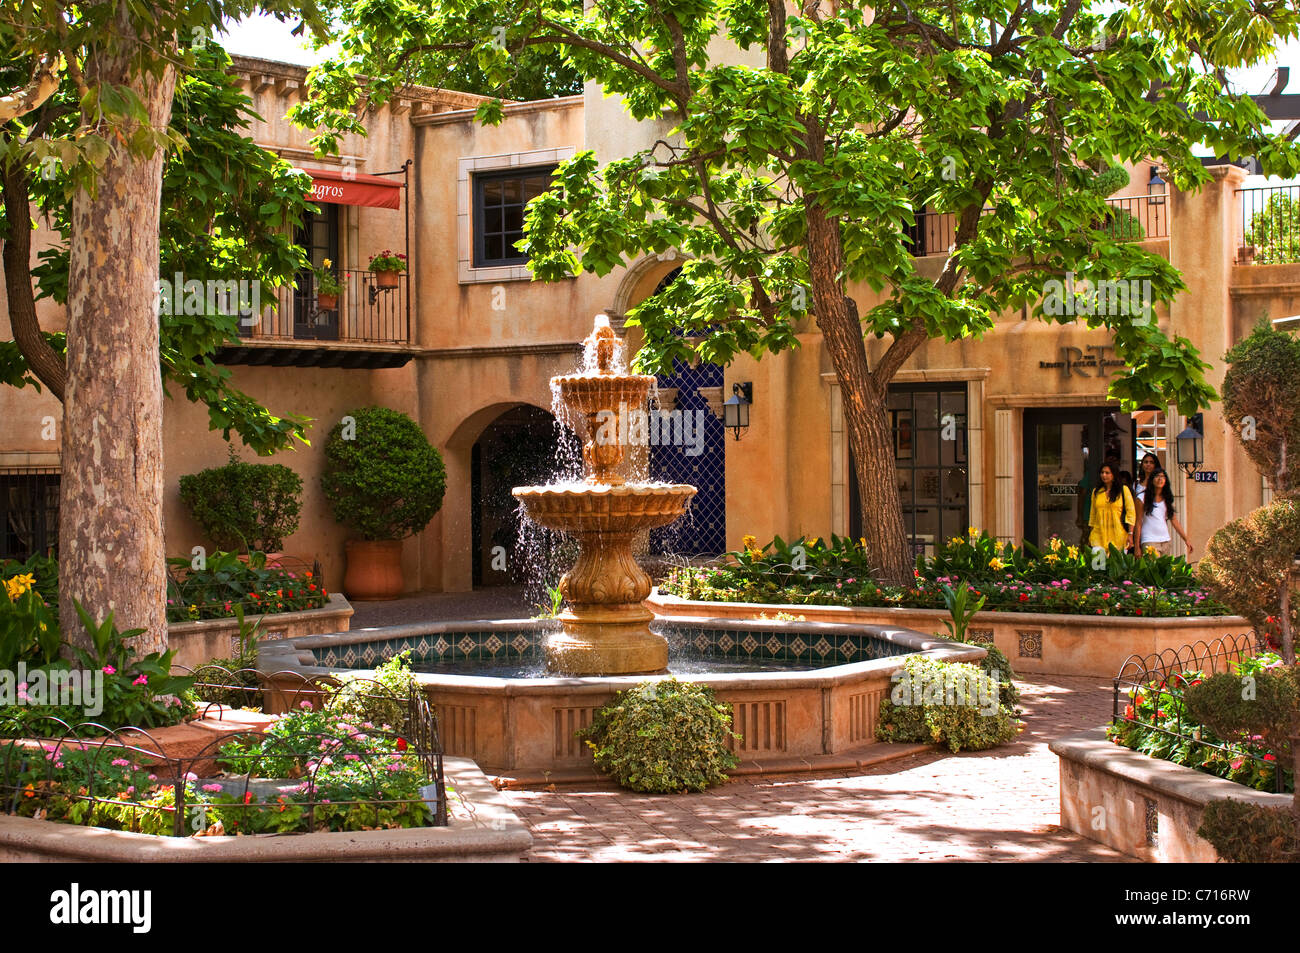 Spanish style tiered fountain patio courtyard Stock Photo